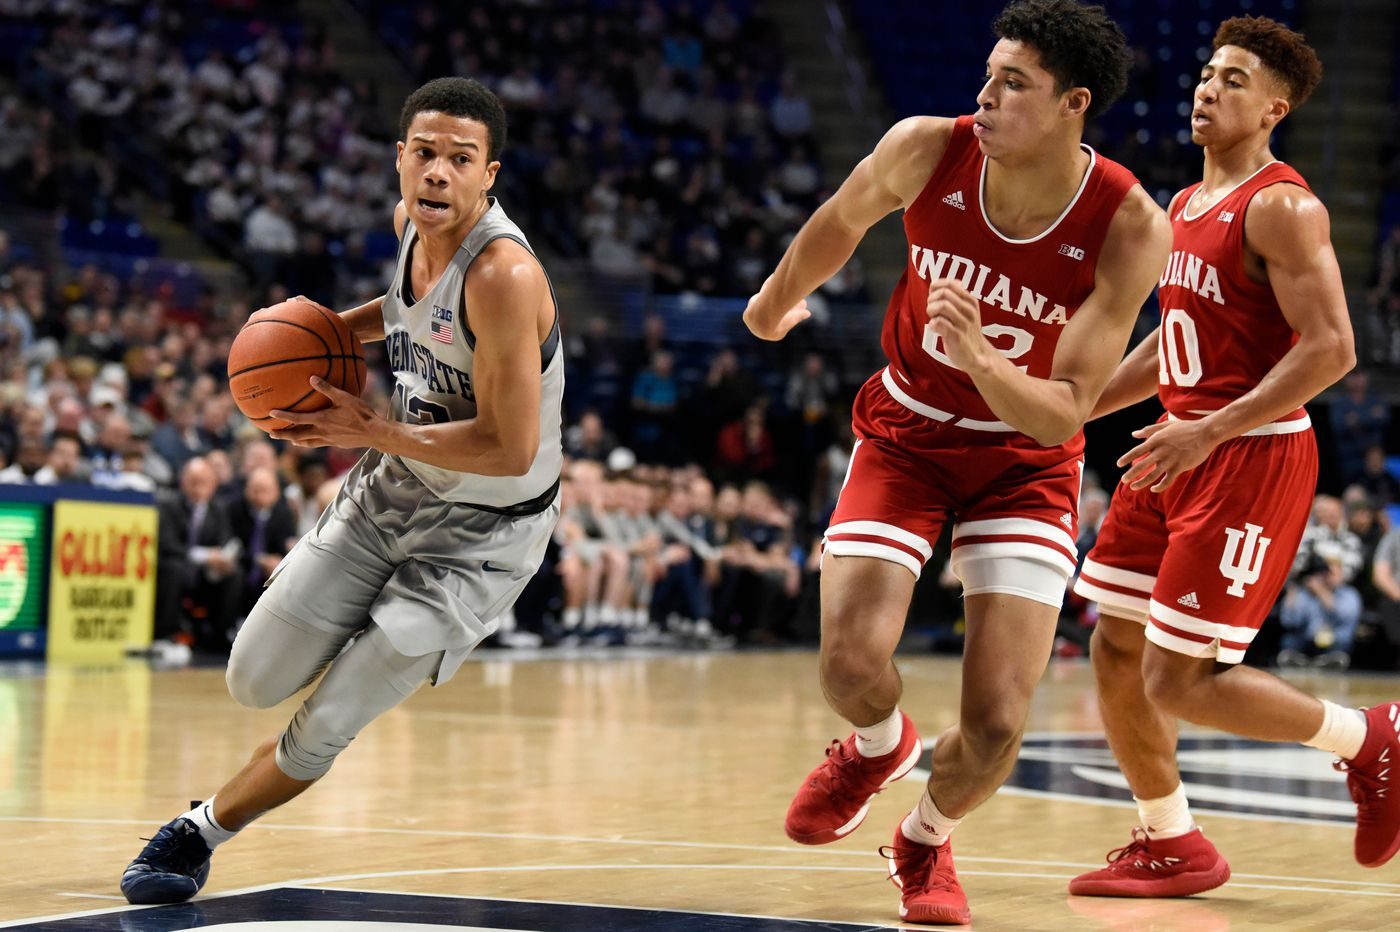 Clifton Moore, back home from Indiana, looking to help La Salle develop | Mike Jensen